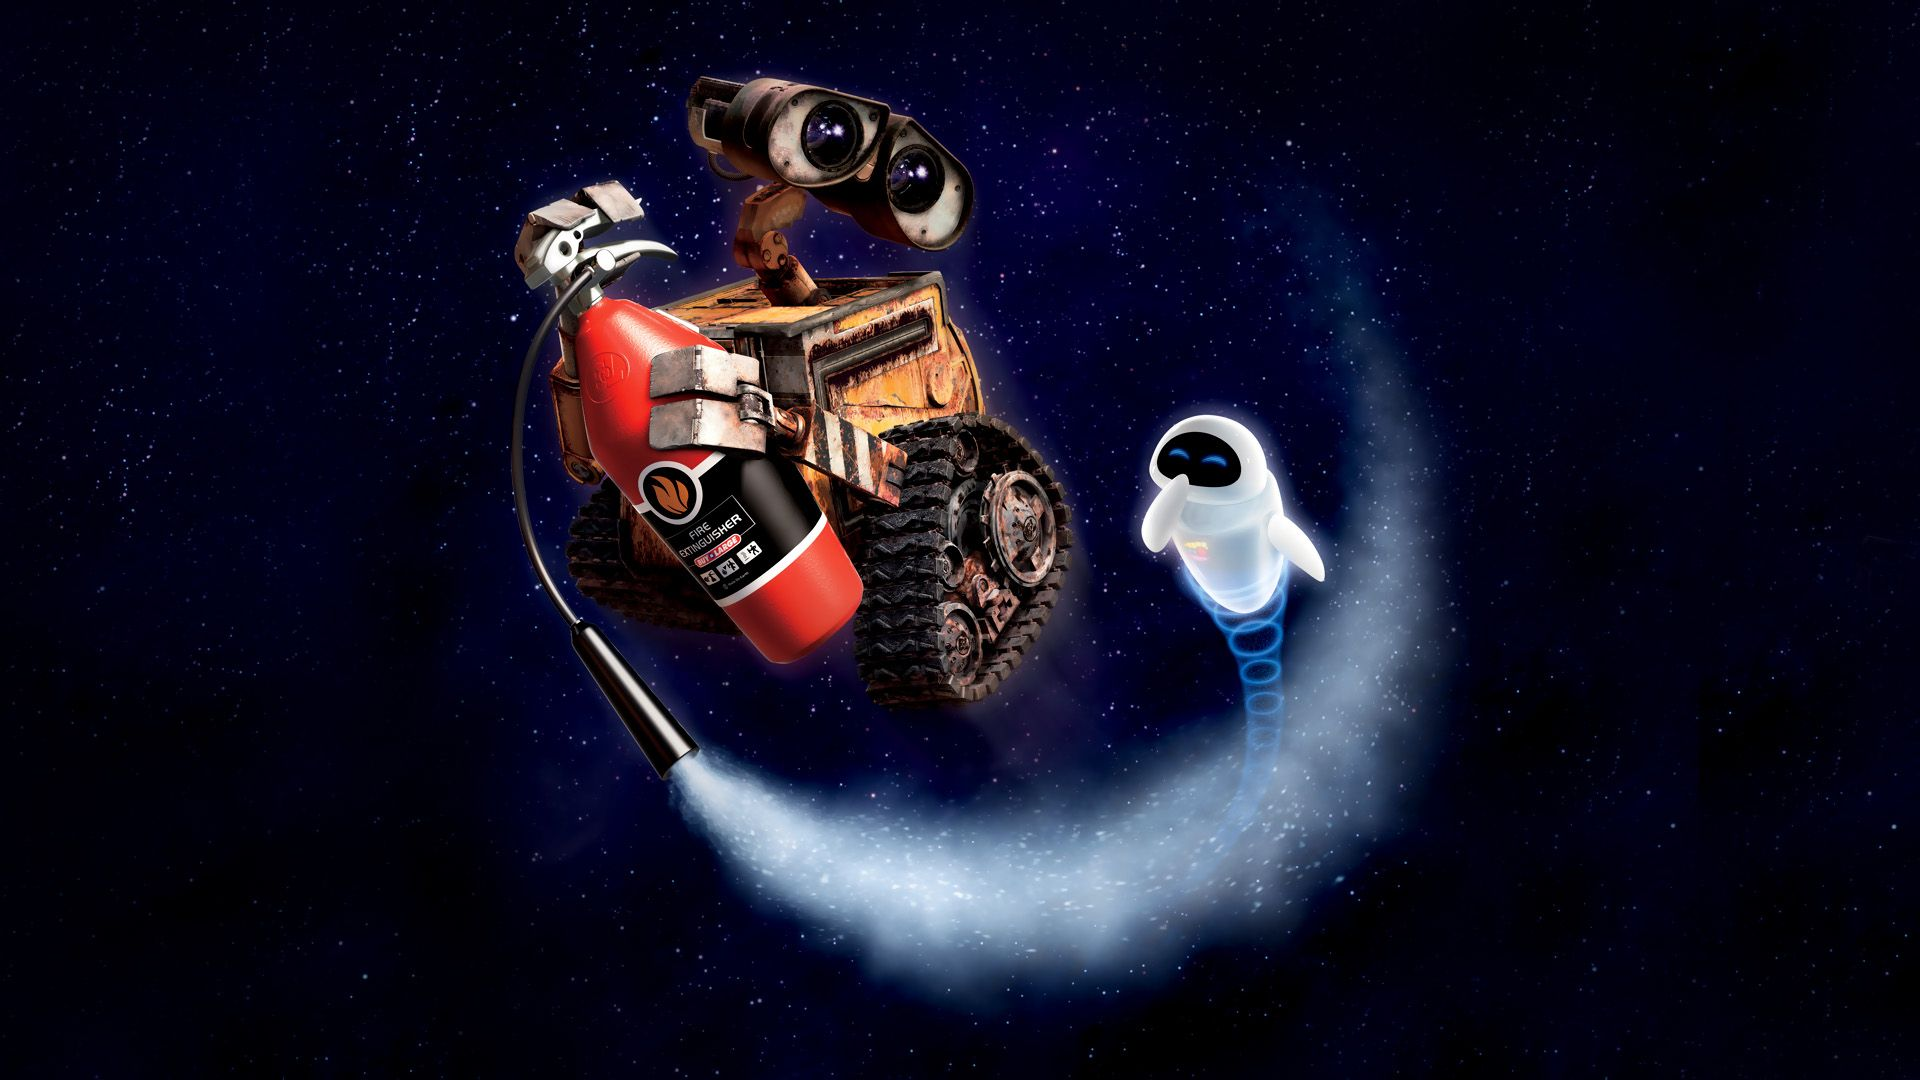 Wall e clipart fire extinguisher svg free download wall e wallpaper 30605 | Wallpaper backgrounds in 2019 ... svg free download